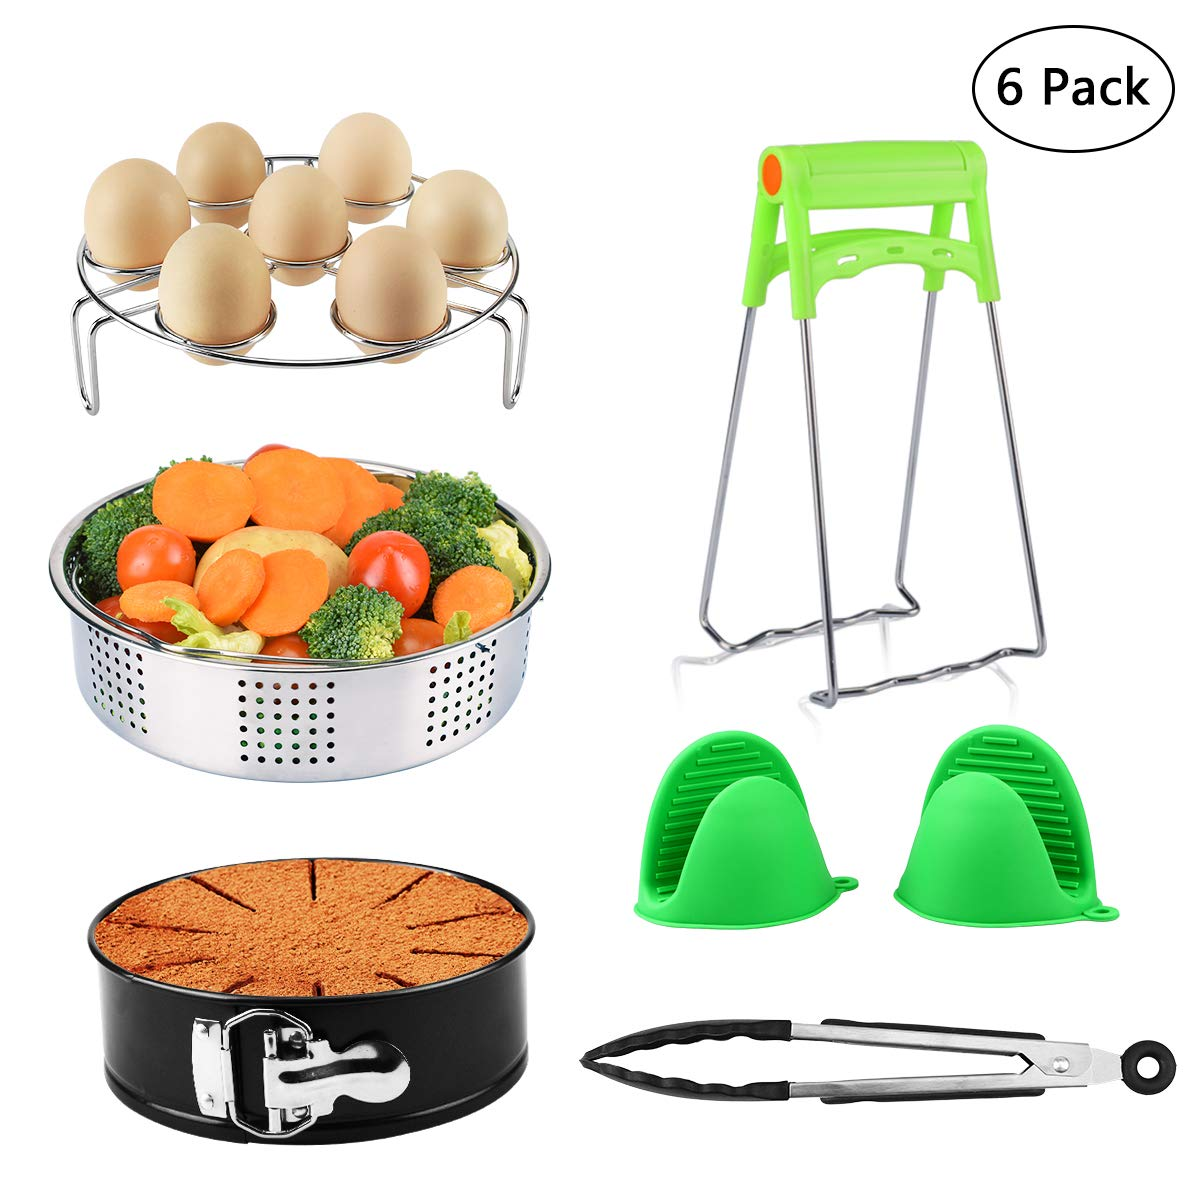 Pot Accessories - 6 Pcs Accessories Set Fits InstantPot 5, 6, 8 Qt Pressure Cooker, Steamer Basket/Egg Steamer Rack/Non-Stick Springform Pan/